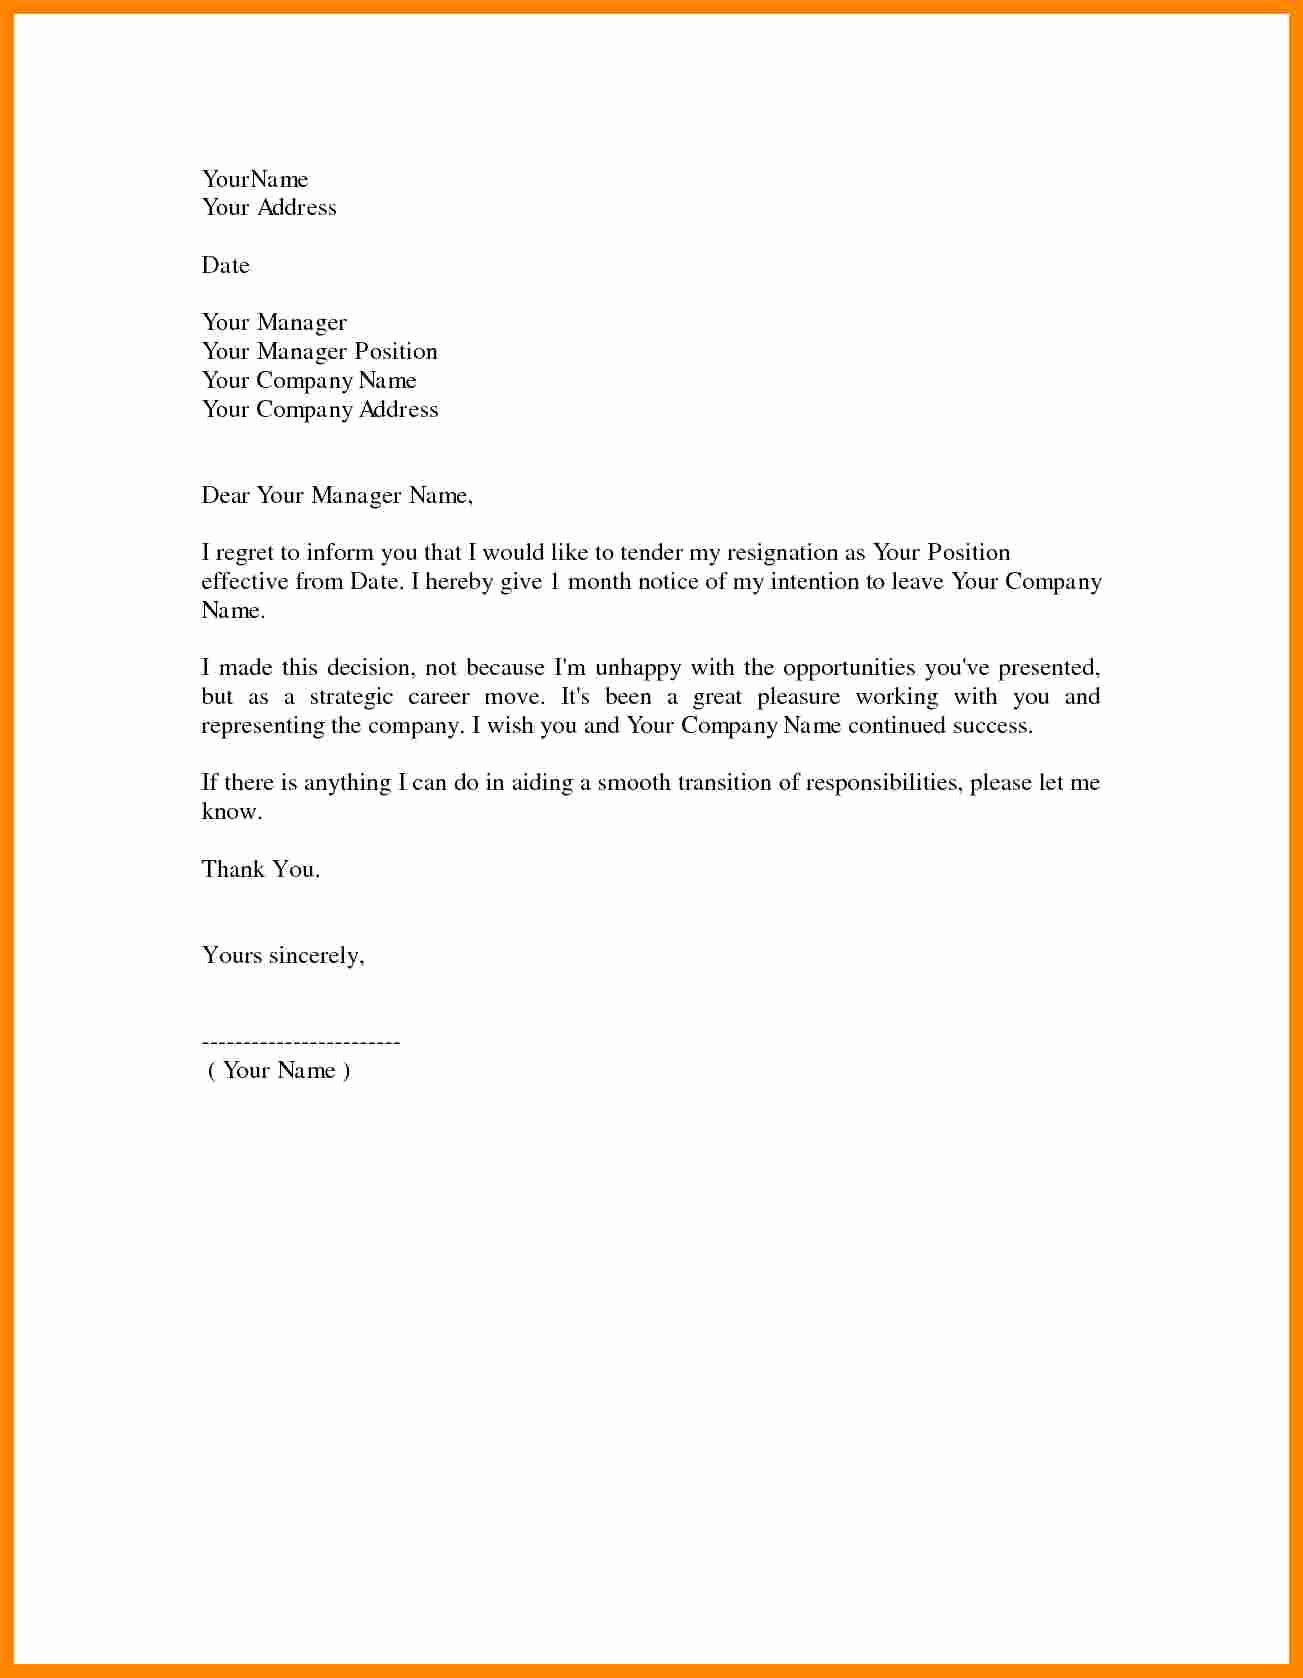 Two Weeks Notice Template Retail New 8 Letter Of Resignation 2 Weeks Notice Nurse